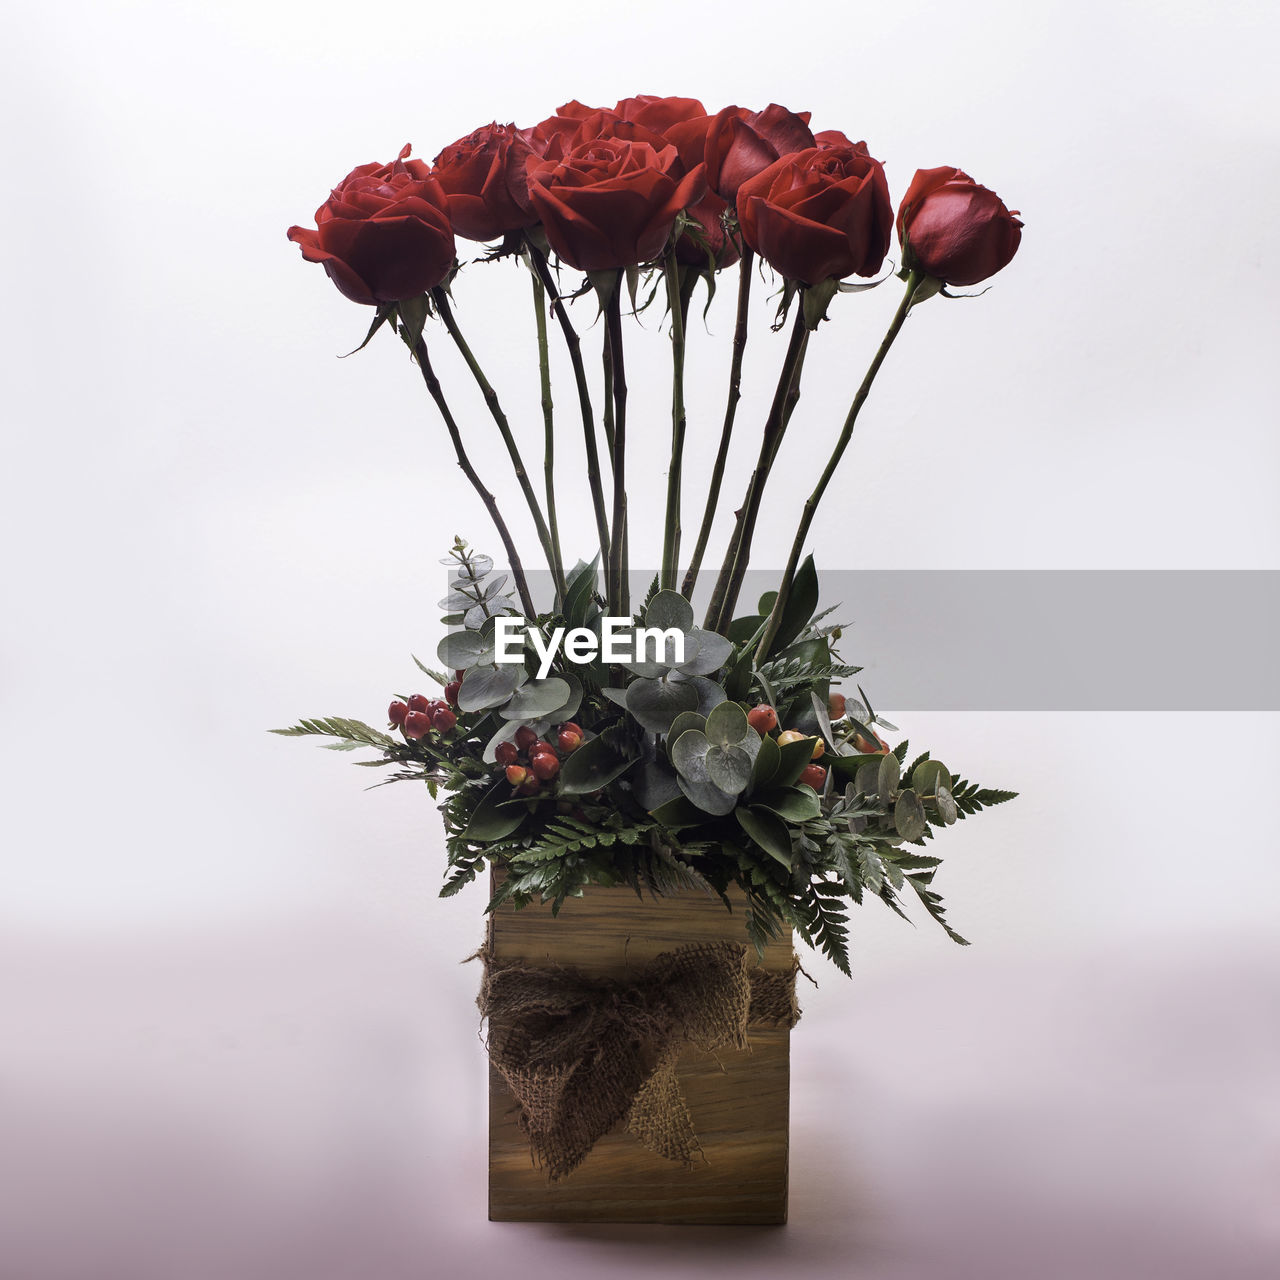 flower, flowering plant, plant, beauty in nature, vulnerability, fragility, freshness, close-up, nature, petal, decoration, growth, vase, flower head, no people, indoors, flower arrangement, red, inflorescence, studio shot, bouquet, sepal